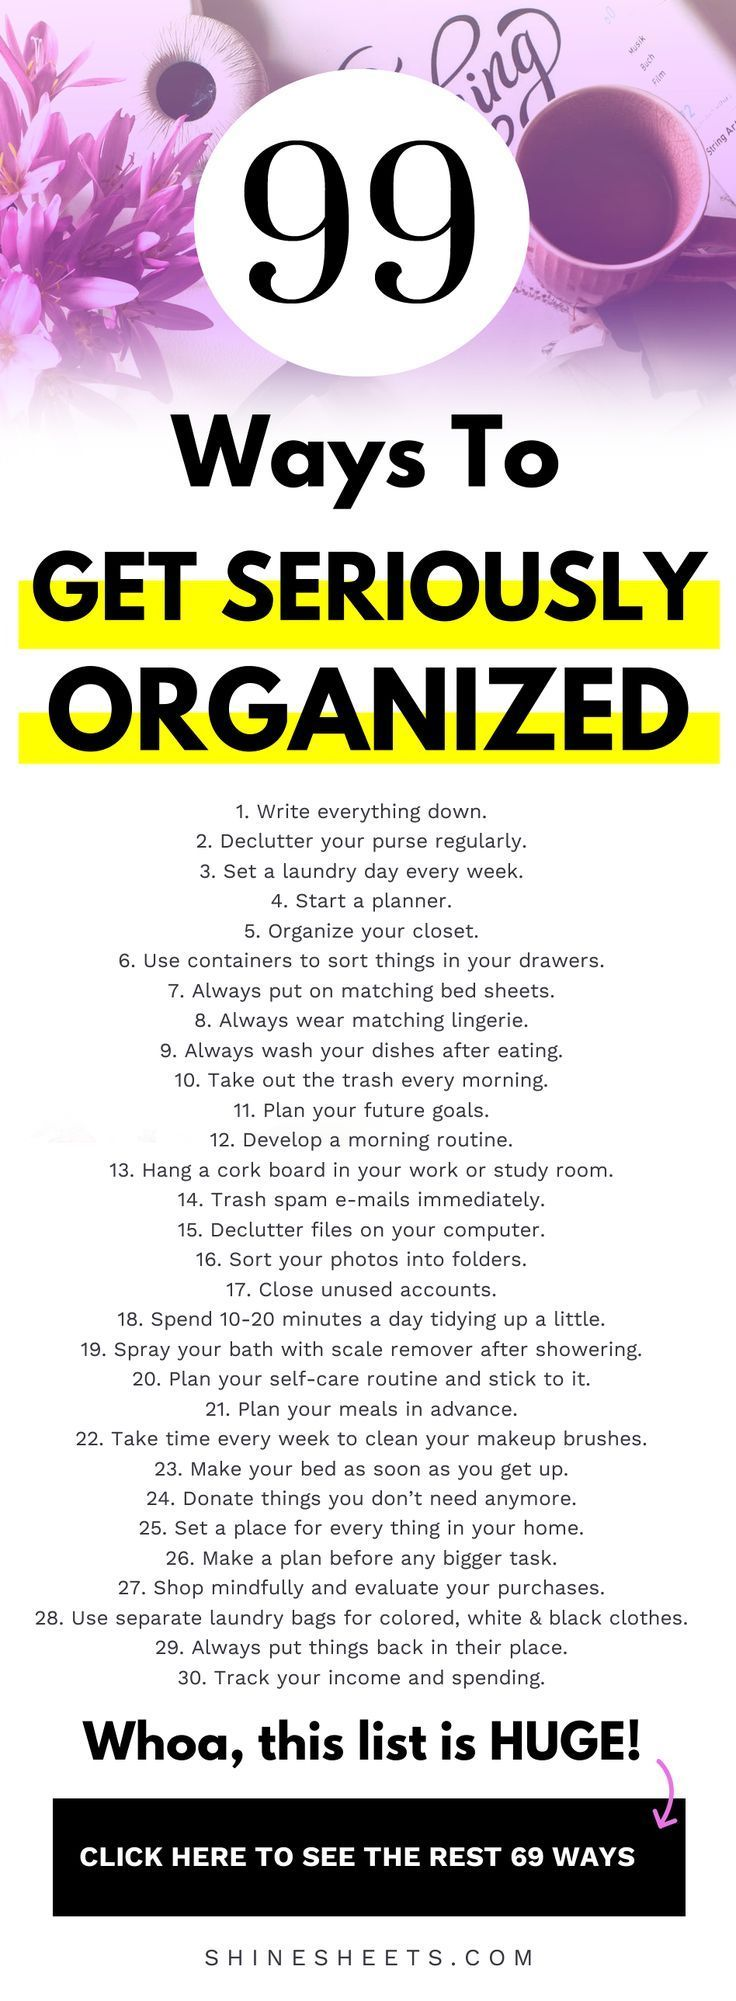 How To Get Organized: 99 Ways To Get SERIOUSLY Organized